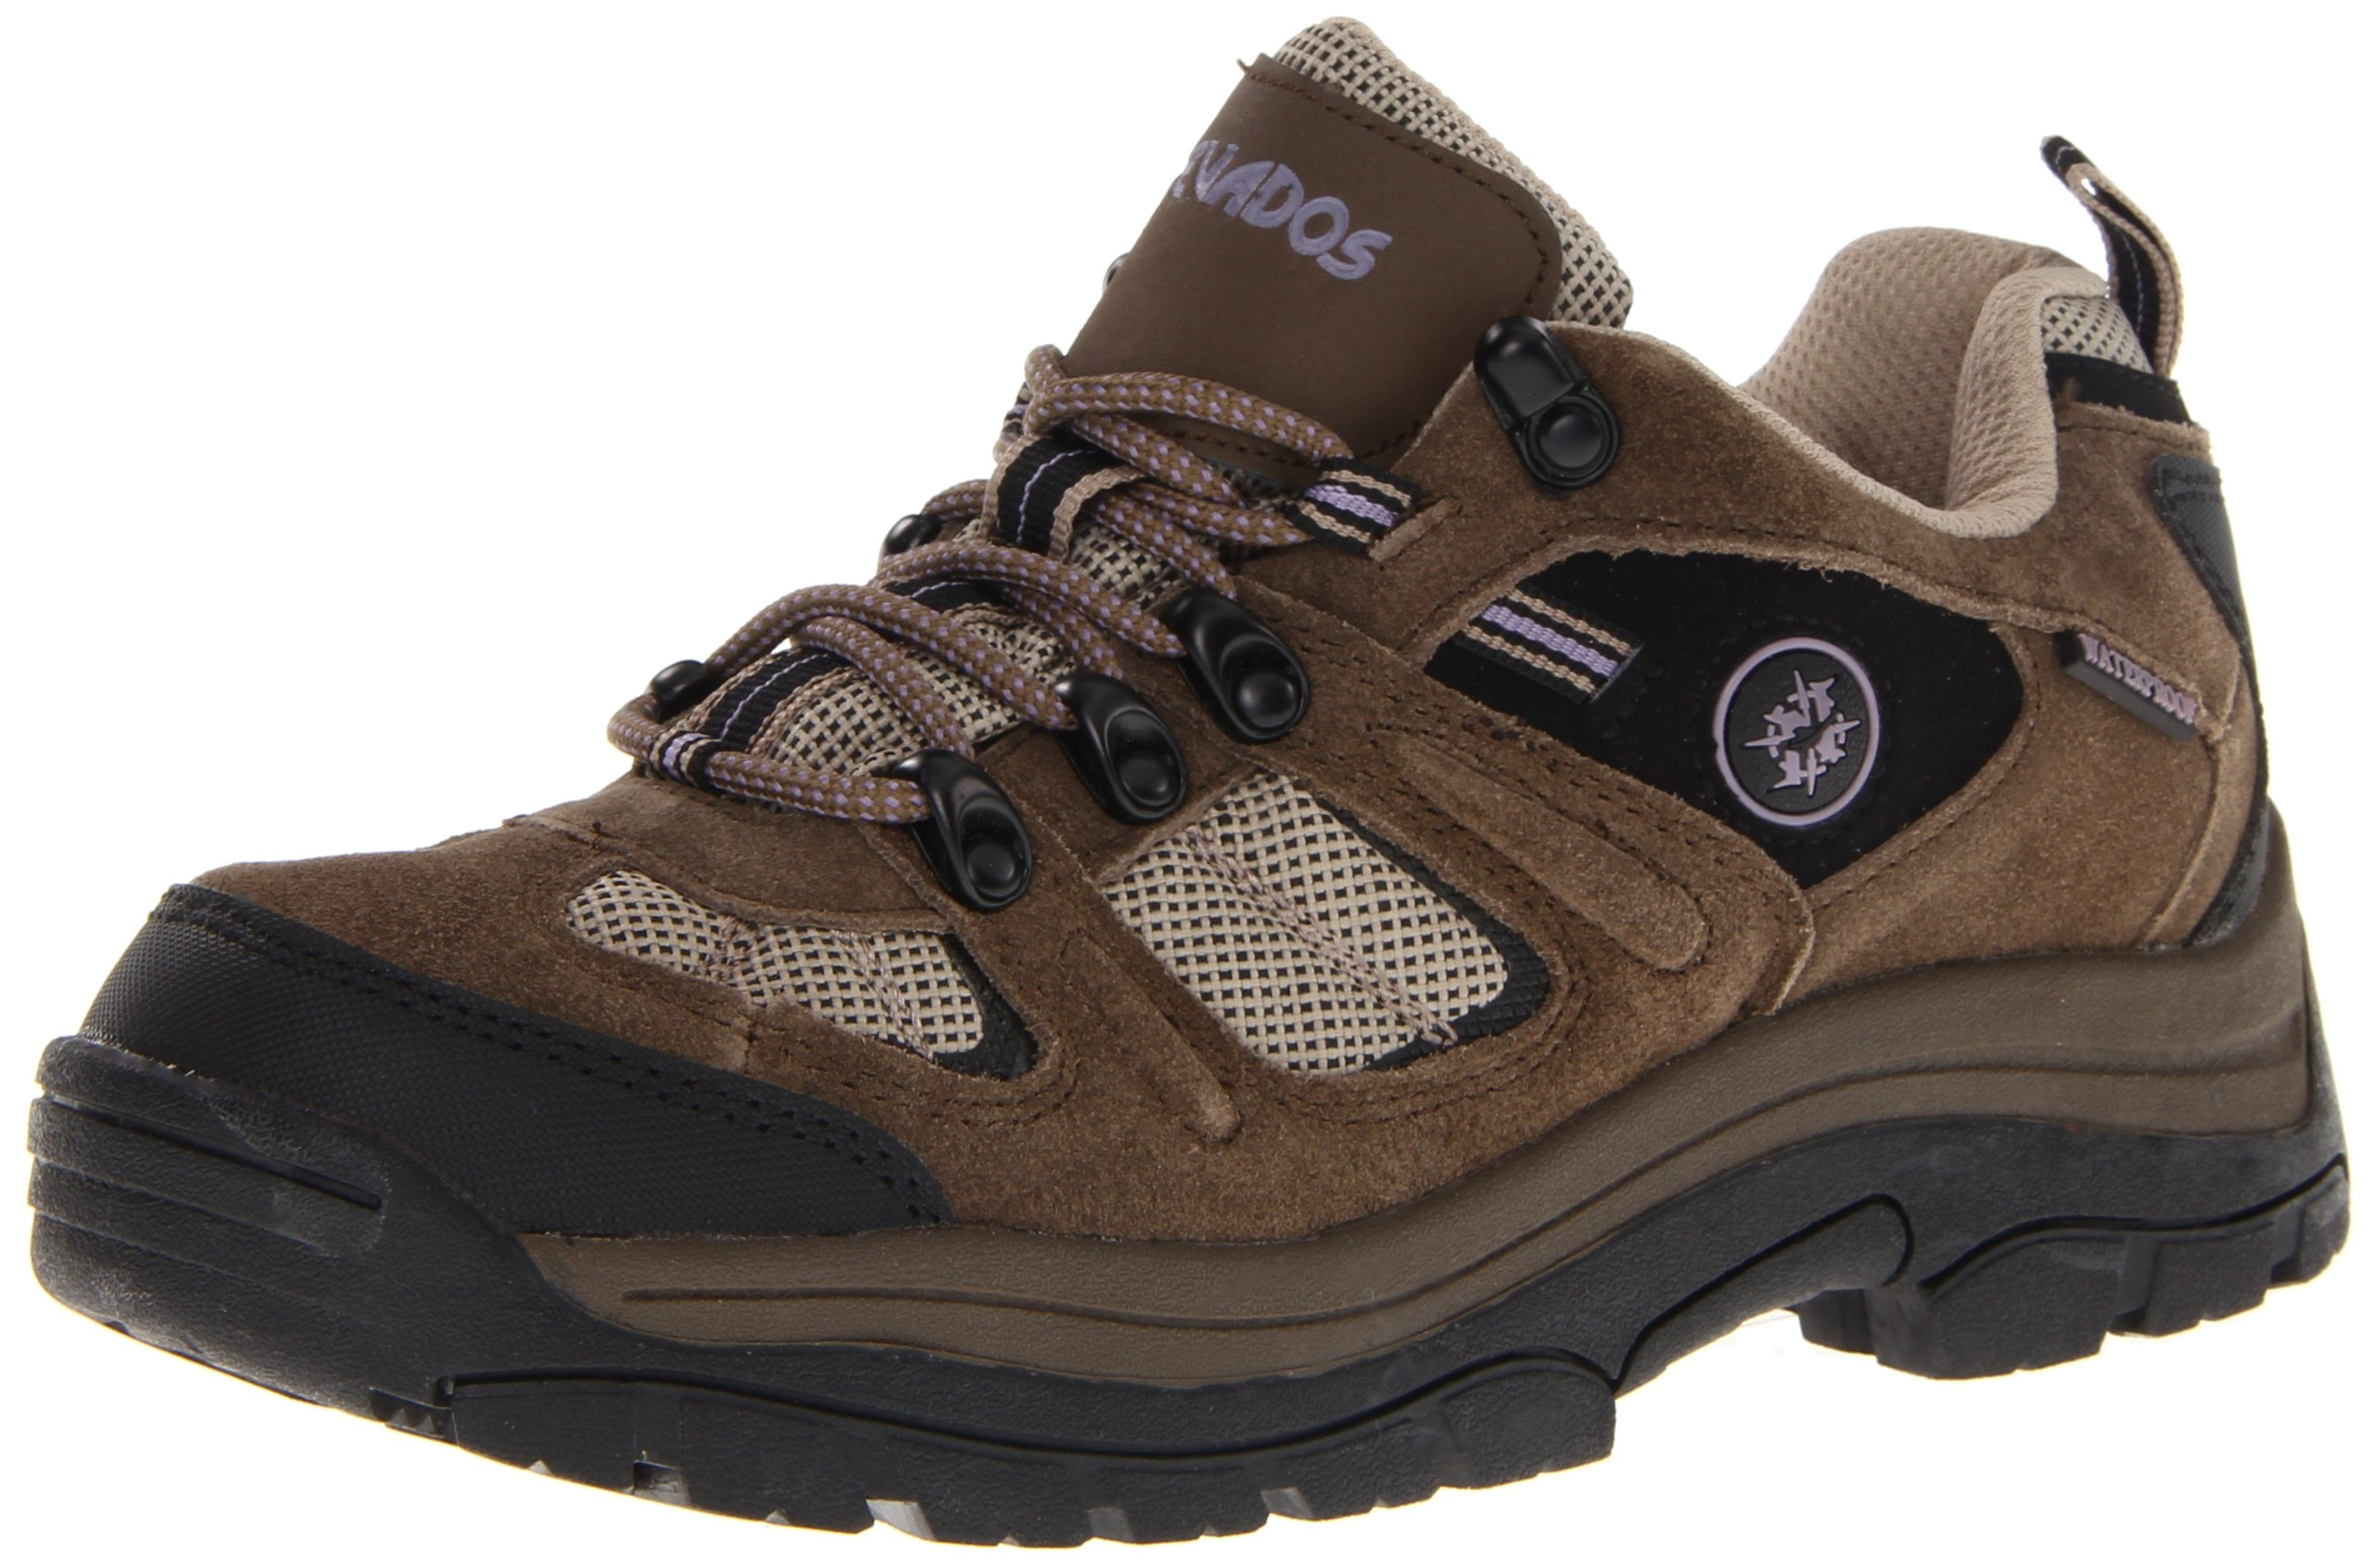 Nevados Women's Klondike Waterproof Low V4161W Hiking Boot,Dark Brown/Black/Taupe,8.5 M US